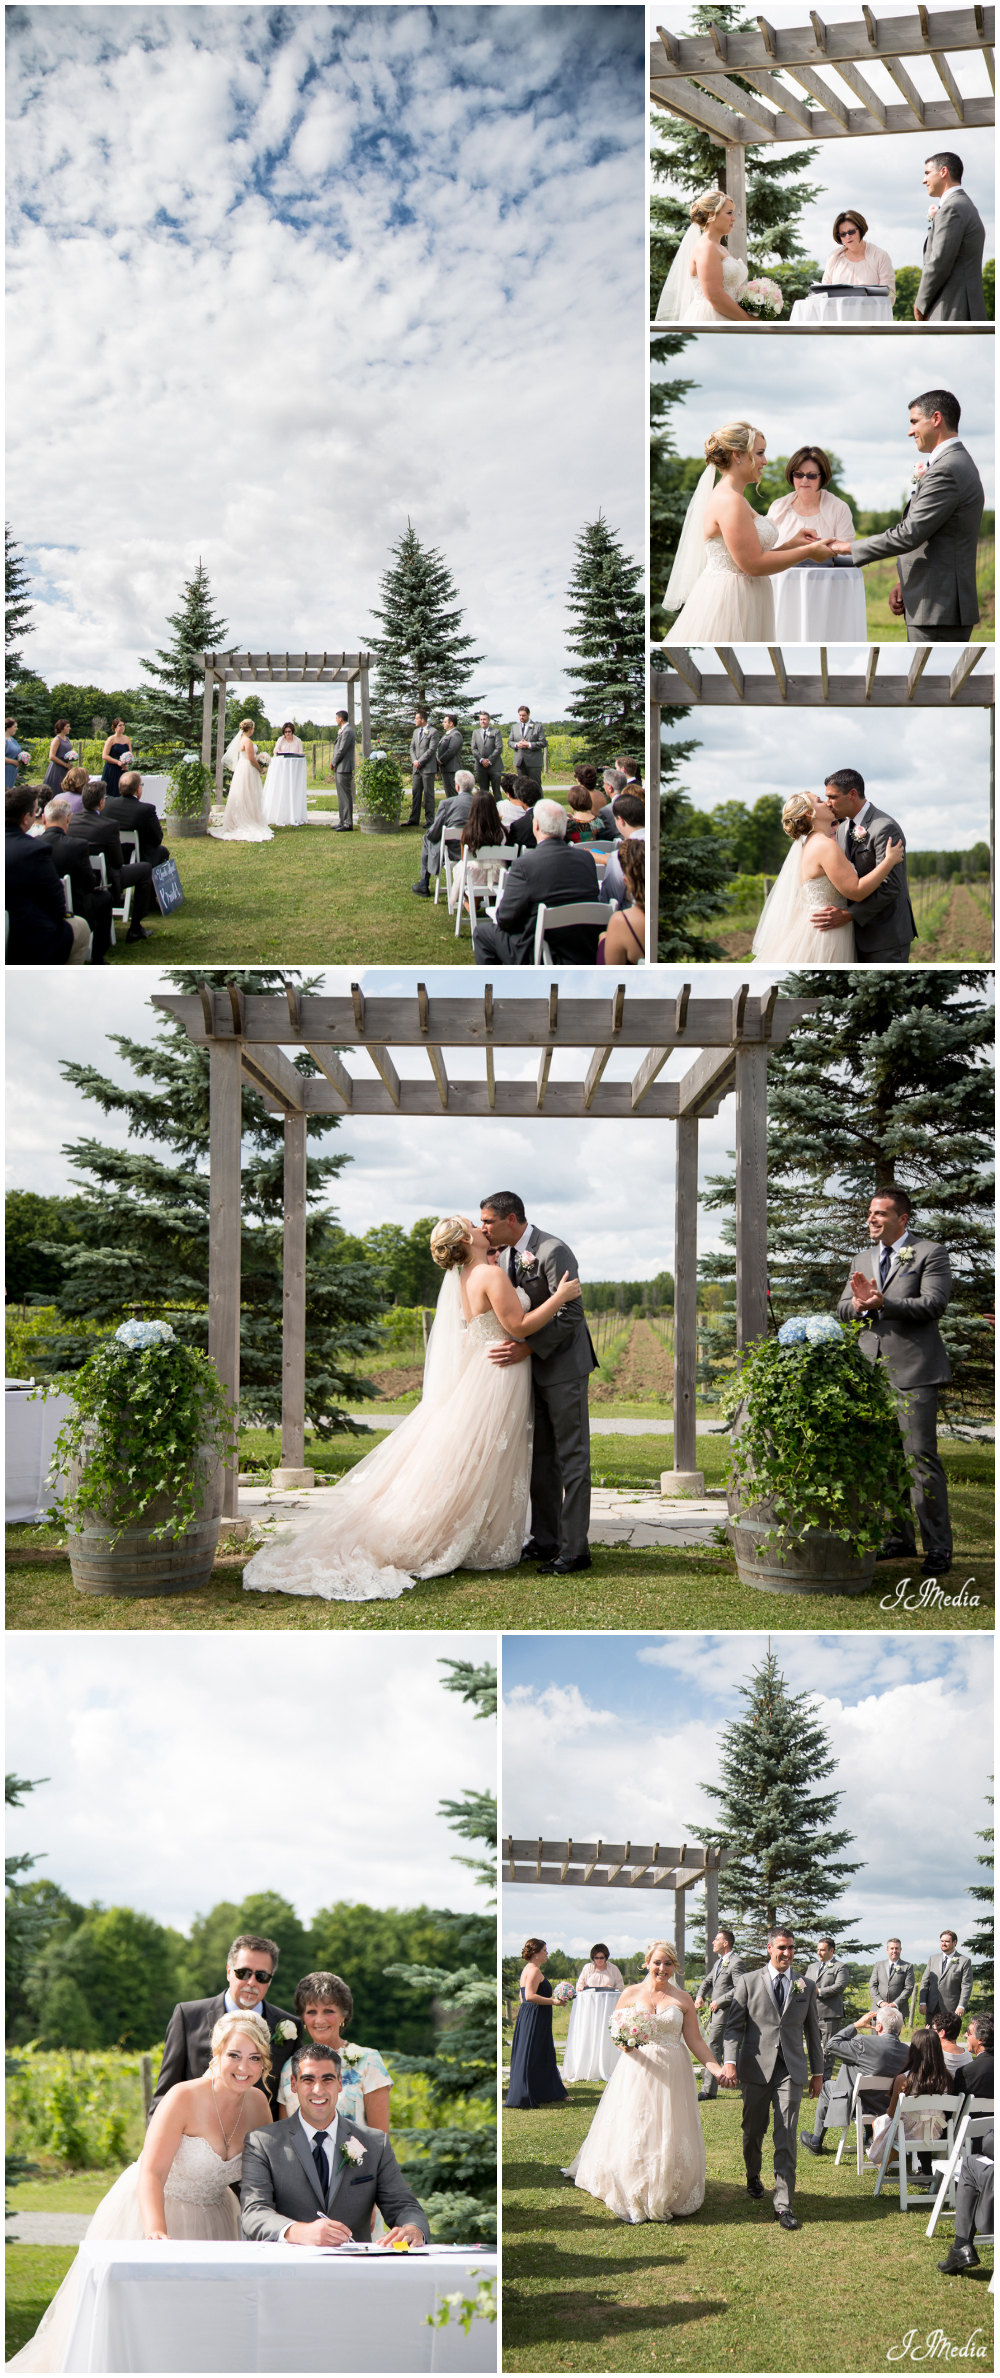 Willow_Springs_Winery_Wedding_JJMedia-5